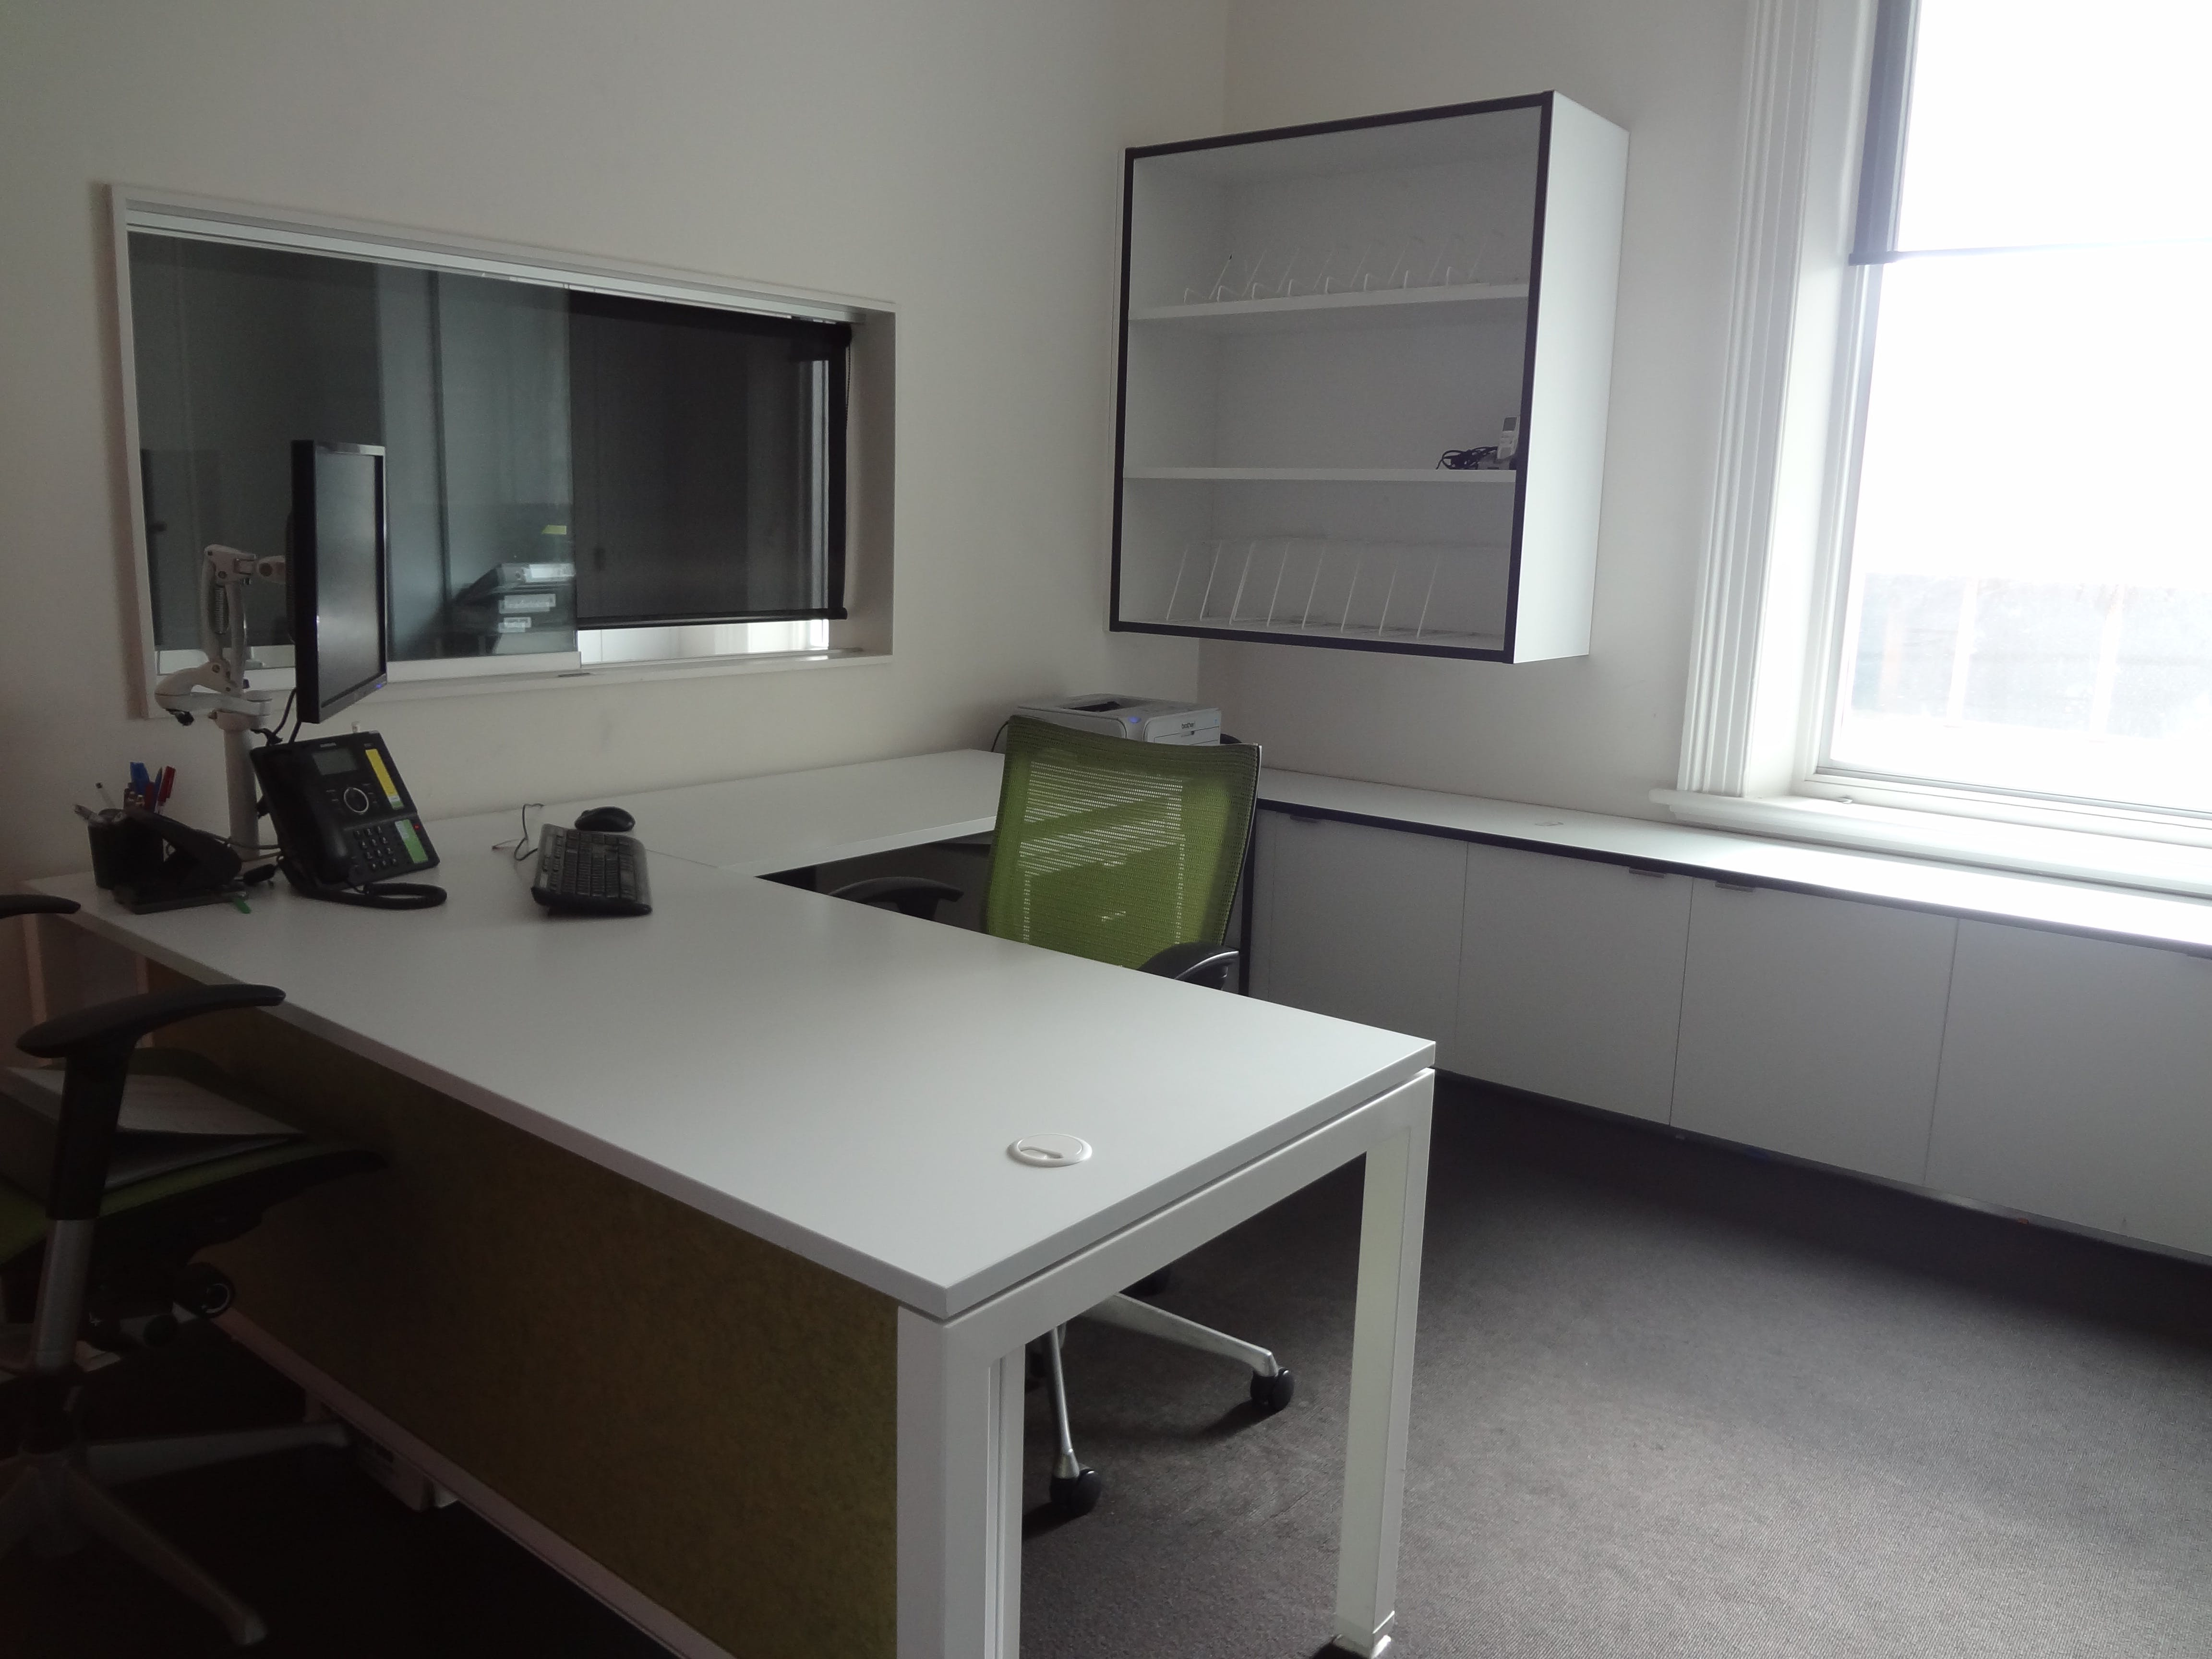 Office 1, private office at WBH Group, image 8